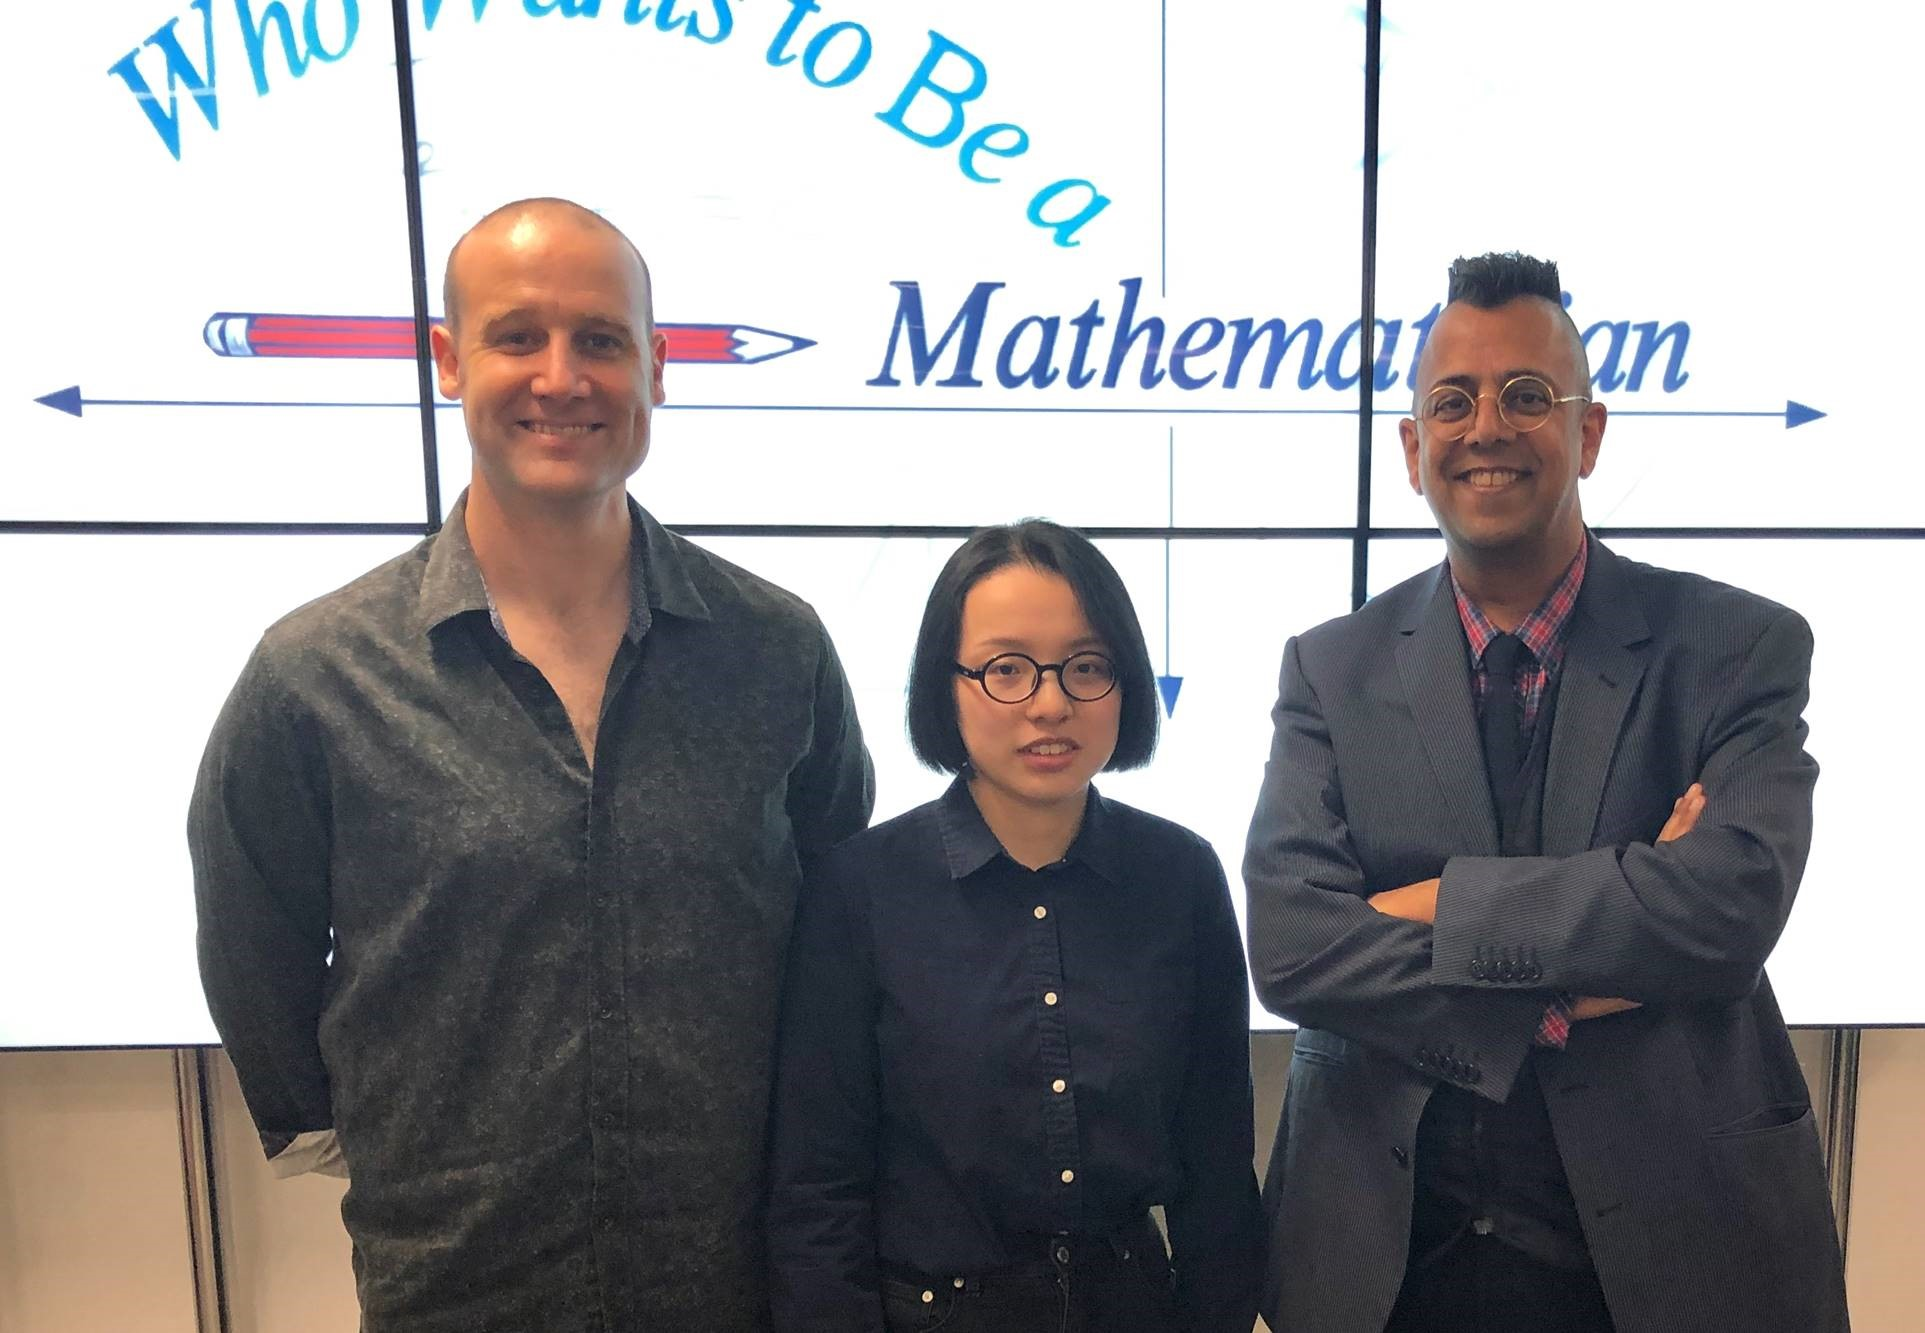 Our 2018/19 winner Olivia Guo, pictured with Matt Parker and Simon Singh.